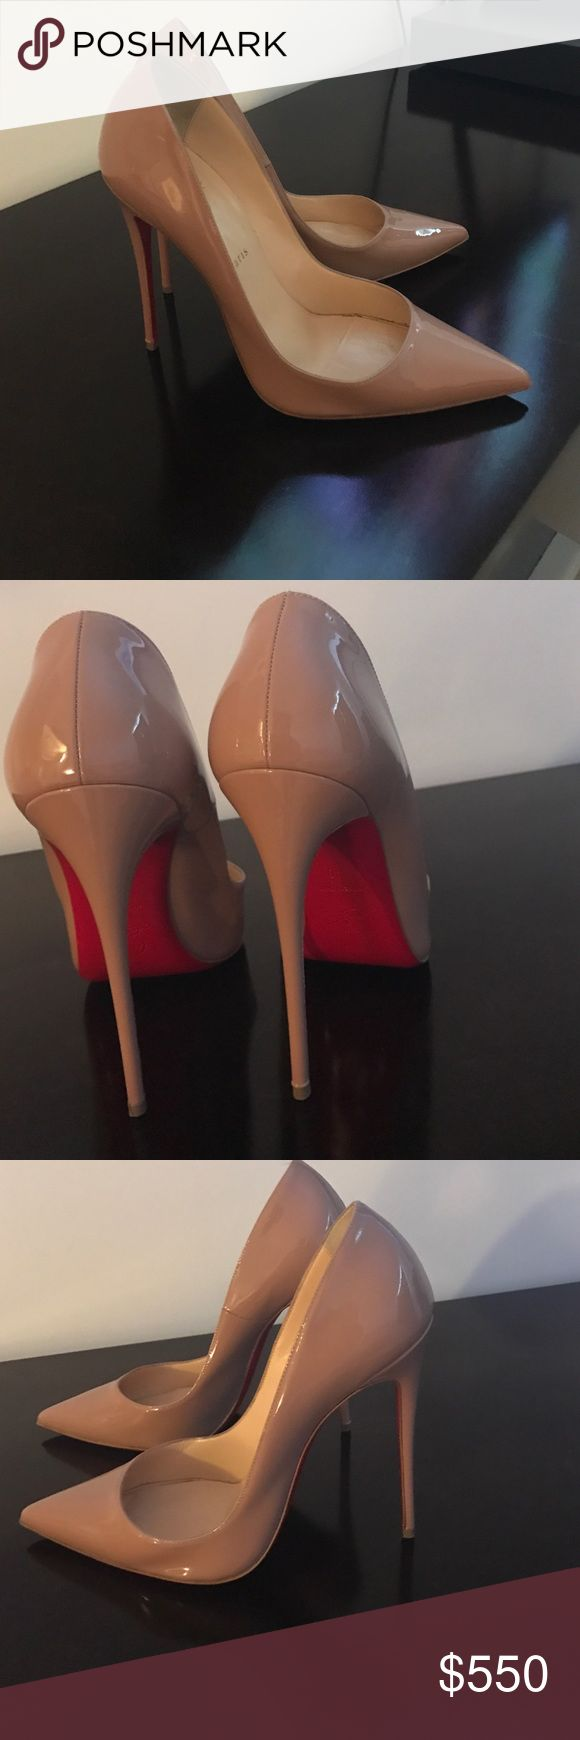 Christian Louboutin so Kate Worn one time for 2 hours, size 40 Christian Louboutin Shoes Heels